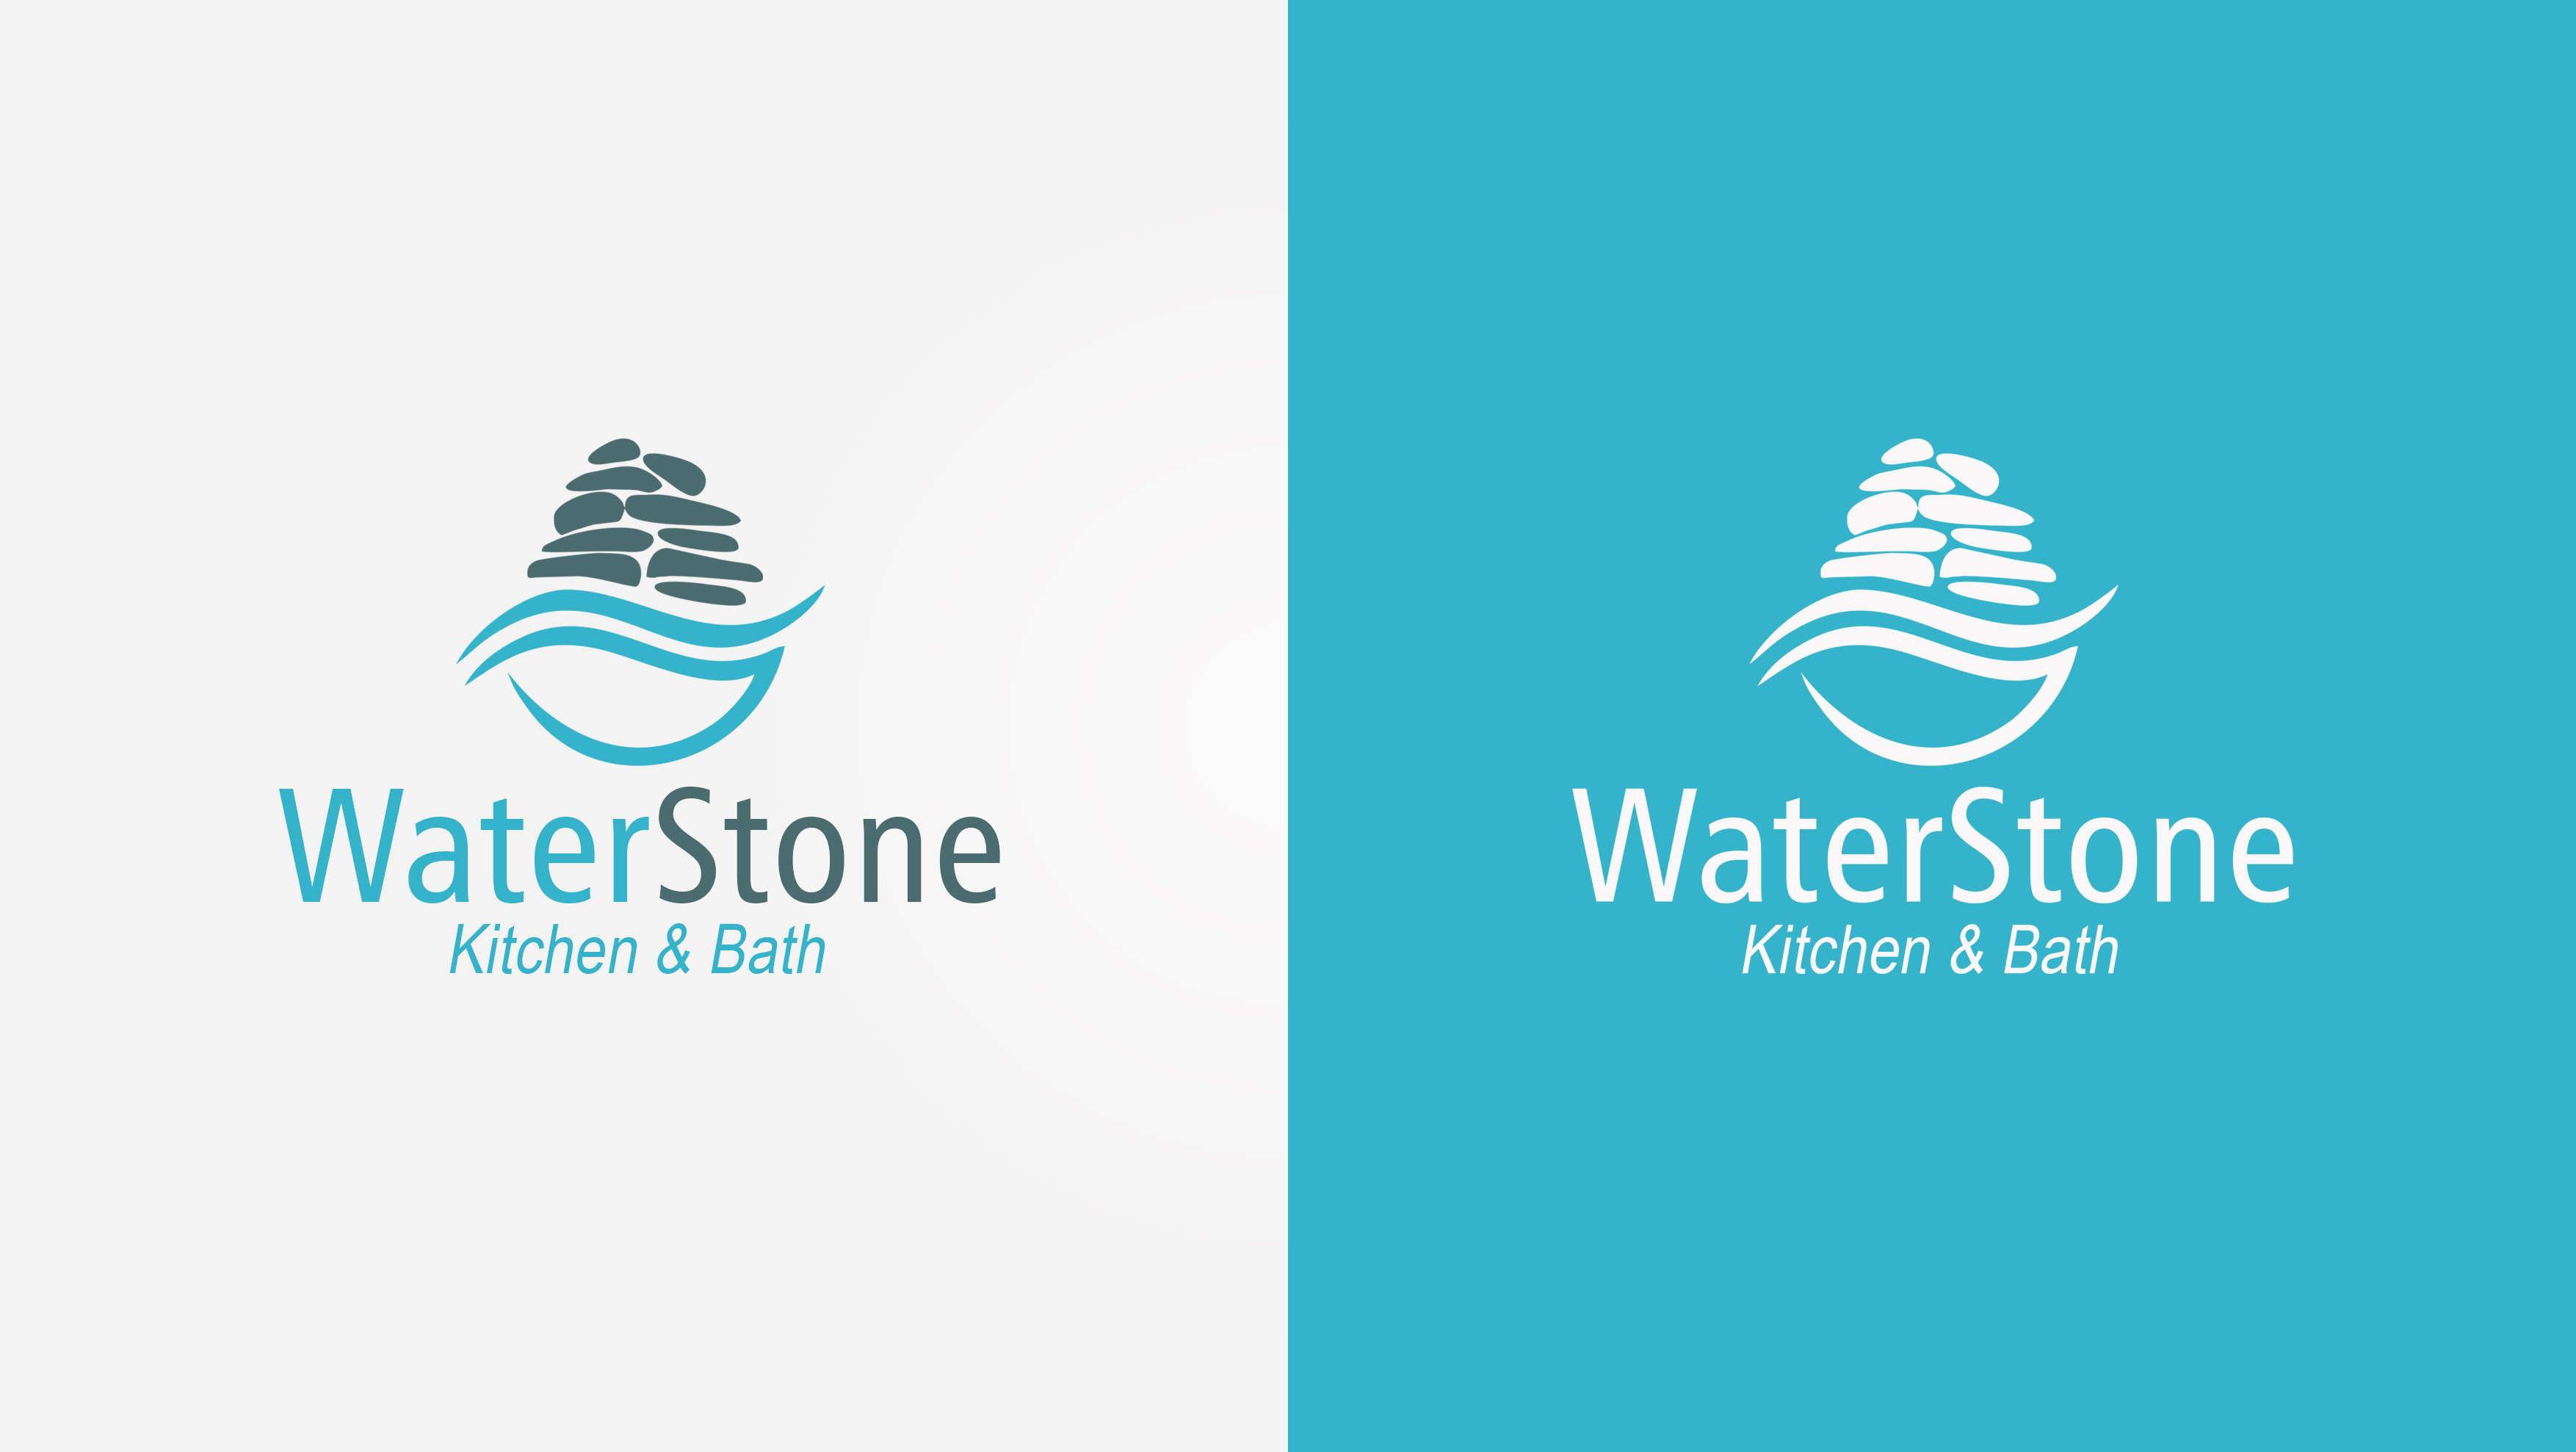 kitchen and bath logo simple logo design contests waterstone kitchen u0026 bath logo design design